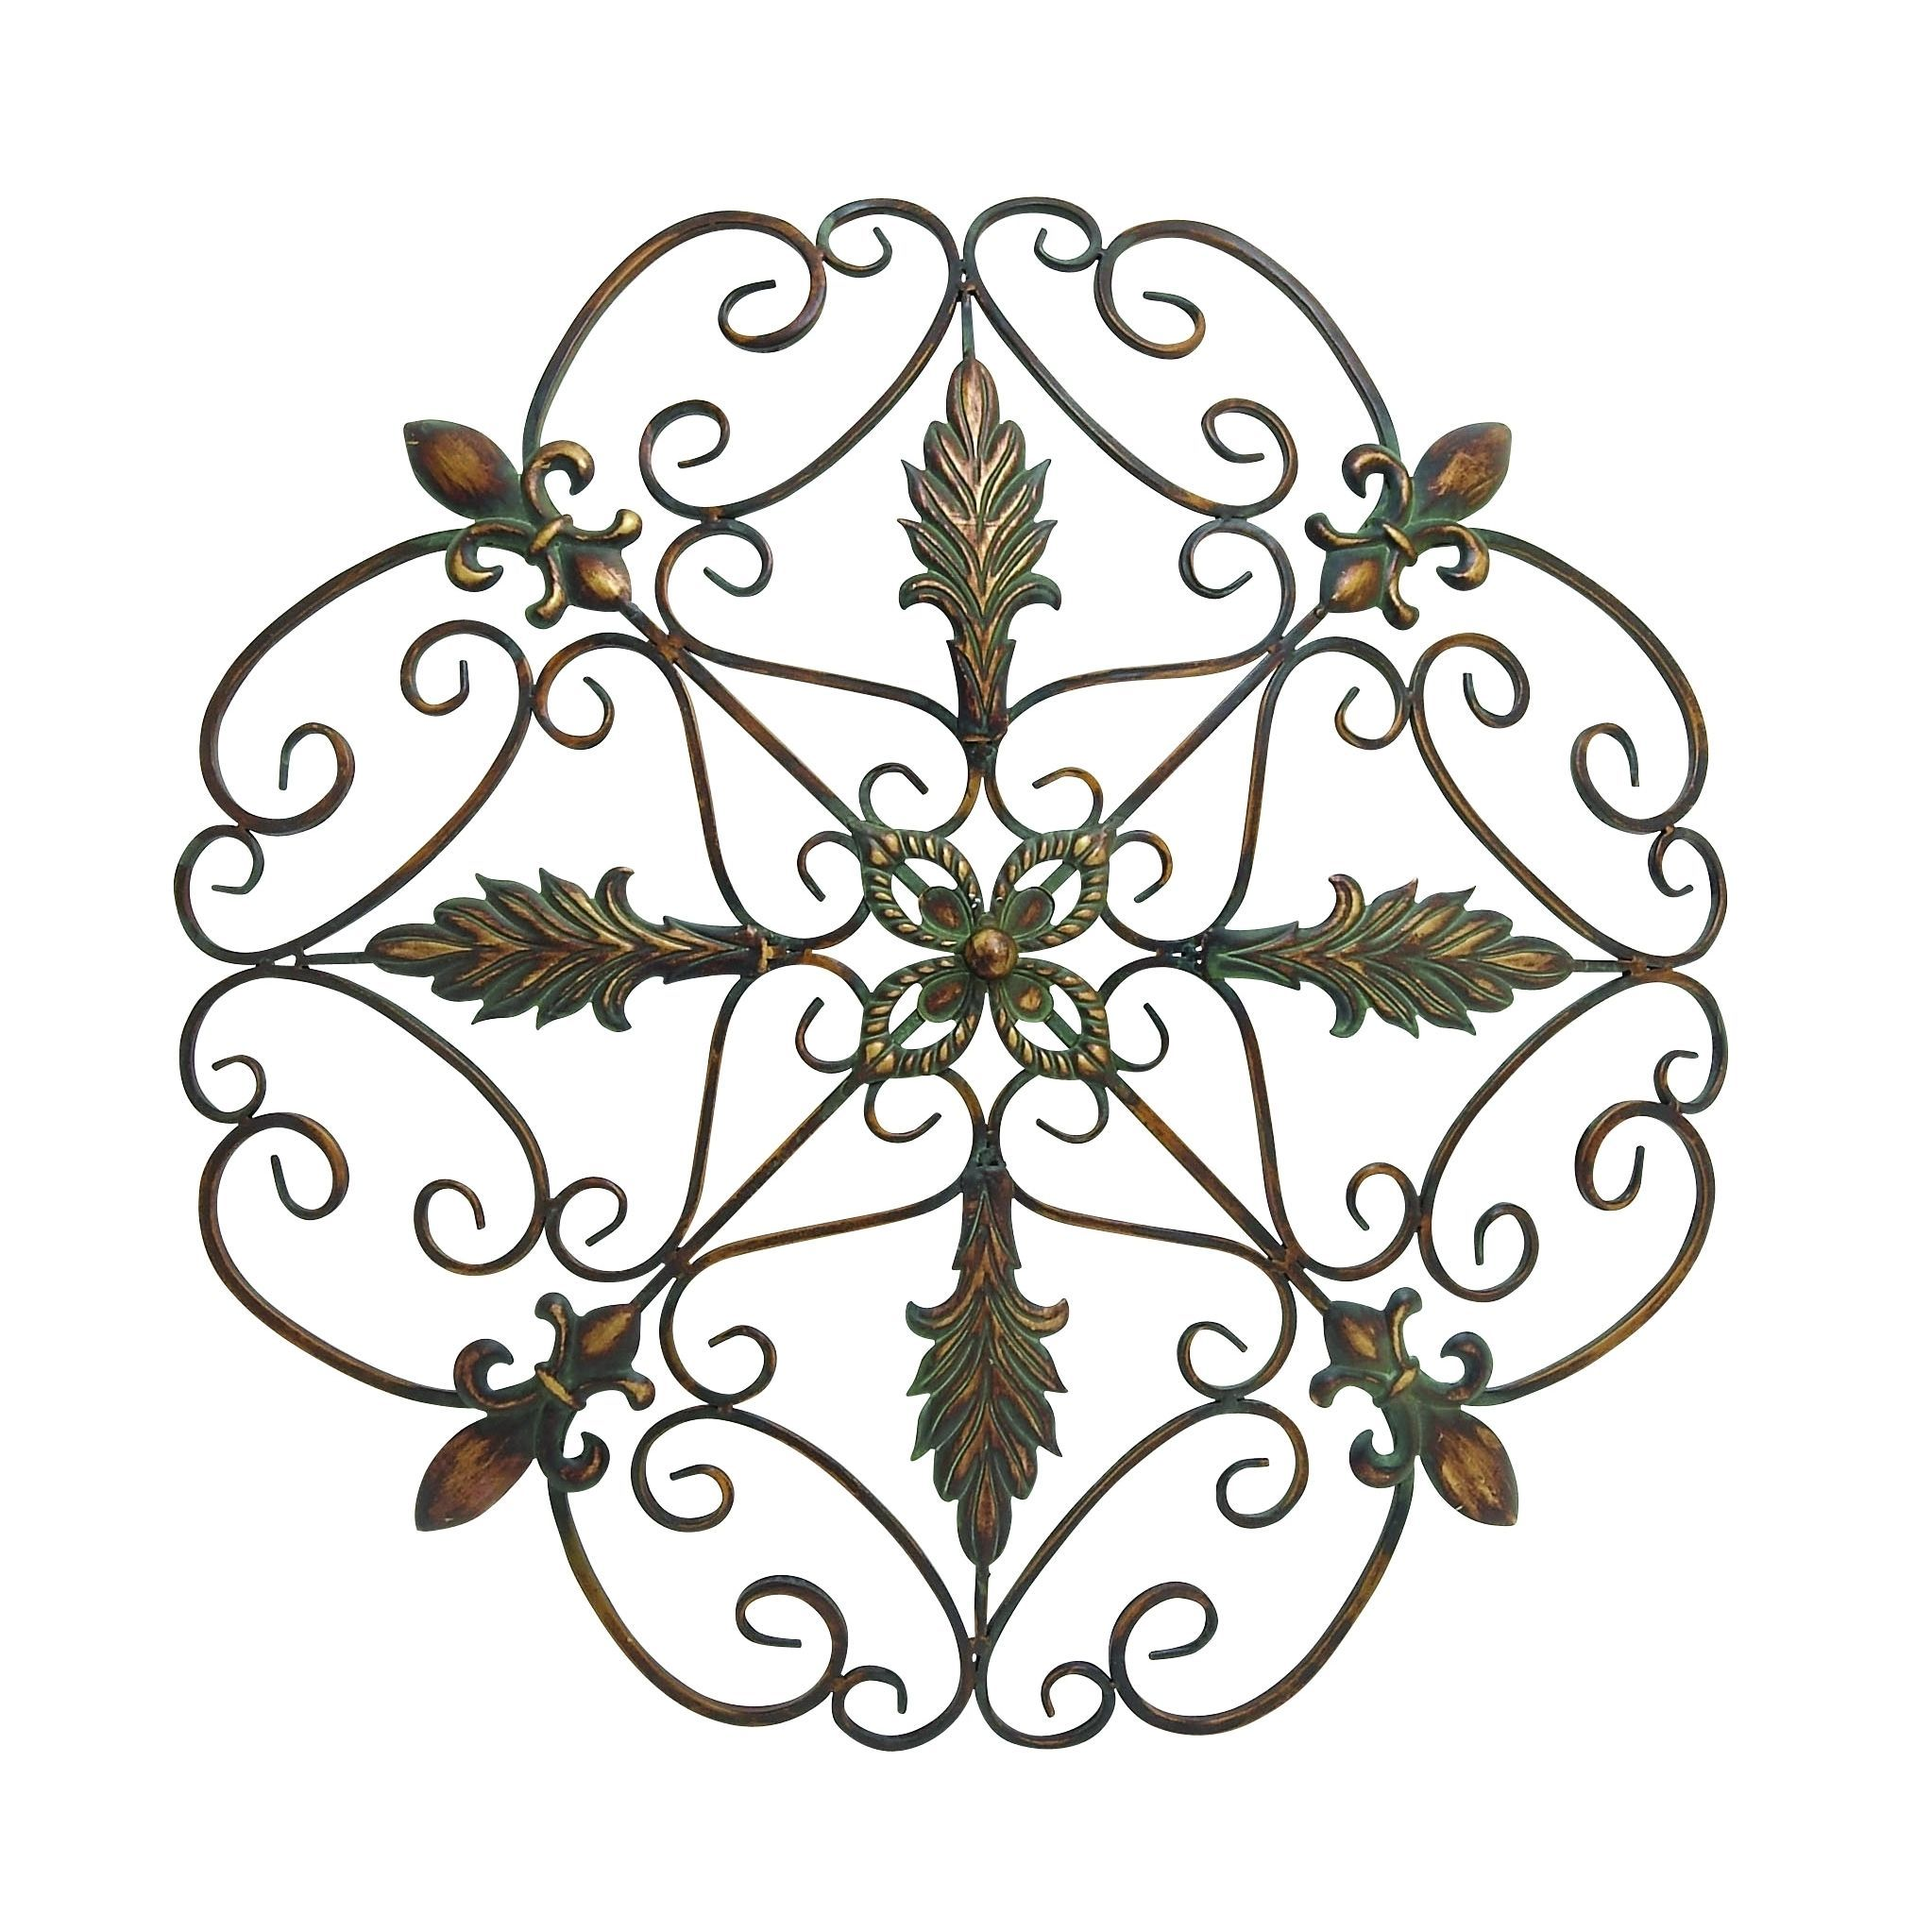 Elegant and antique themed metal wall decorative dcor multi